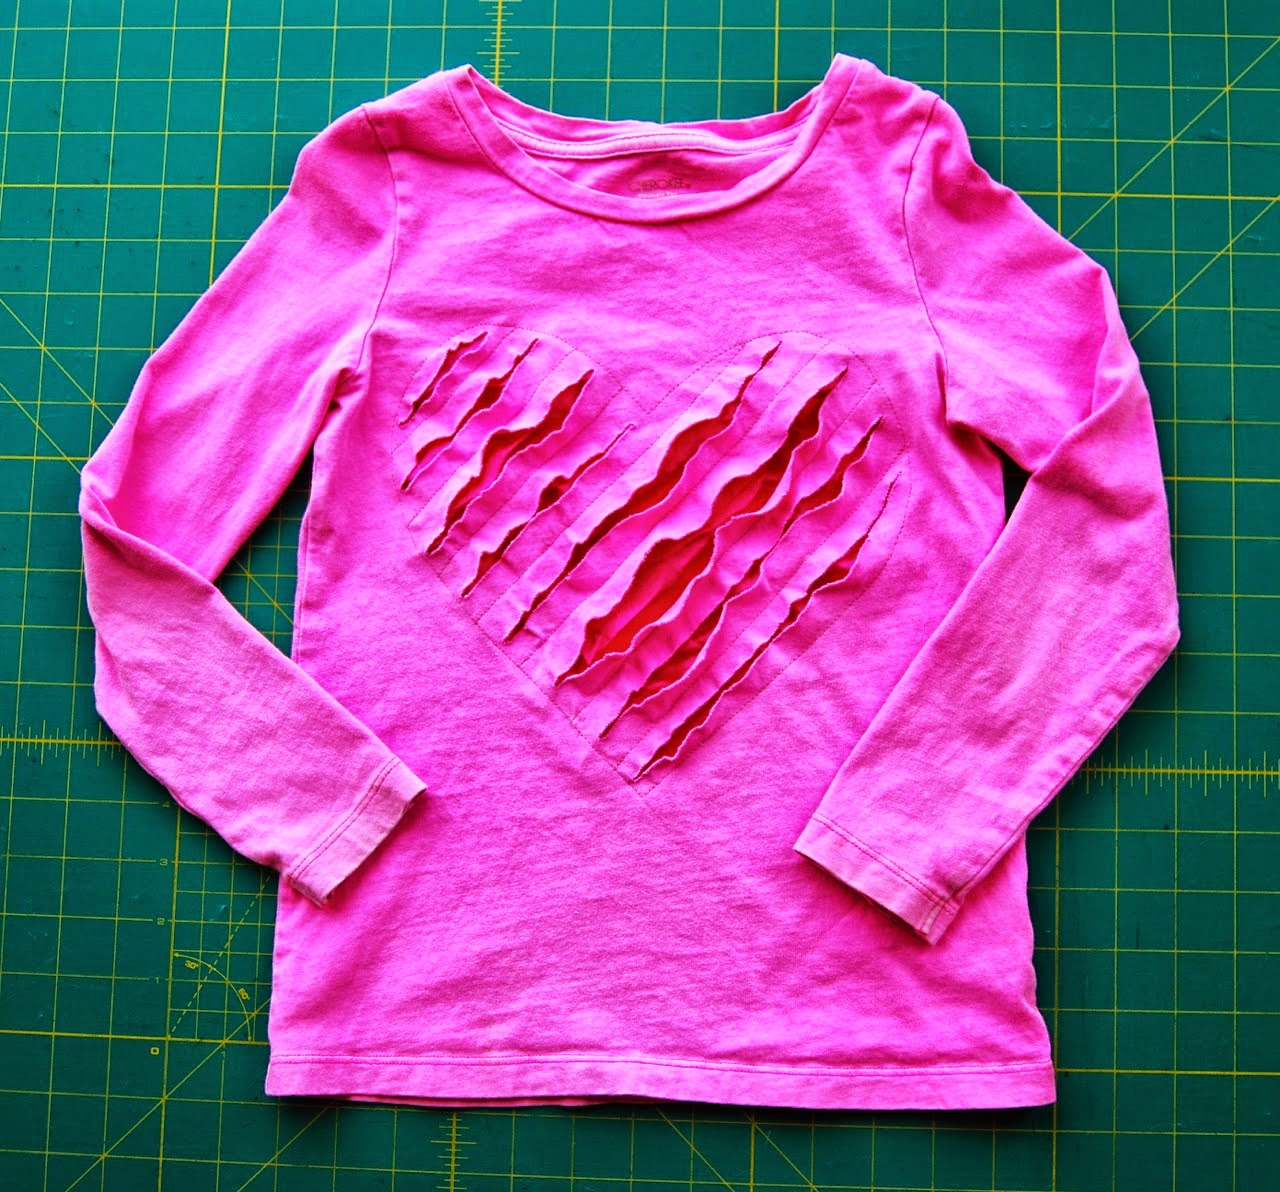 http://roonieranching.blogspot.com/2015/01/shredded-heart-t-shirt-sewing-tutorial.html